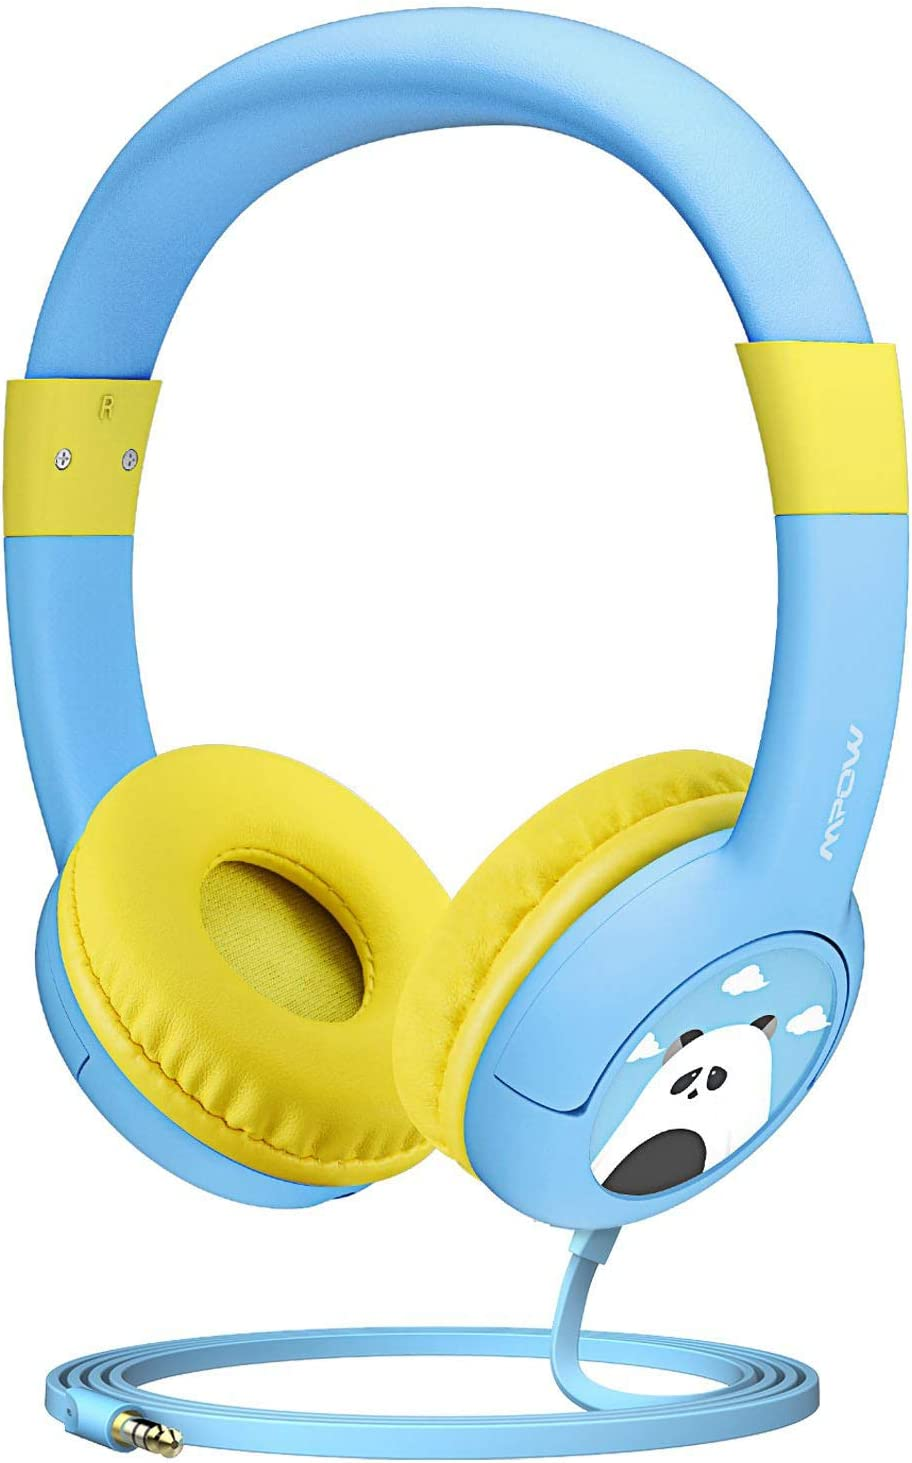 Mpow CH1 Kids Headphones w 85dB Volume Limited Hearing Protection Music Sharing Function, Kids Friendly Safe Food Grade Material, Tangle-Free Cord, Wired On-Ear Headphones for Children Toddler Baby